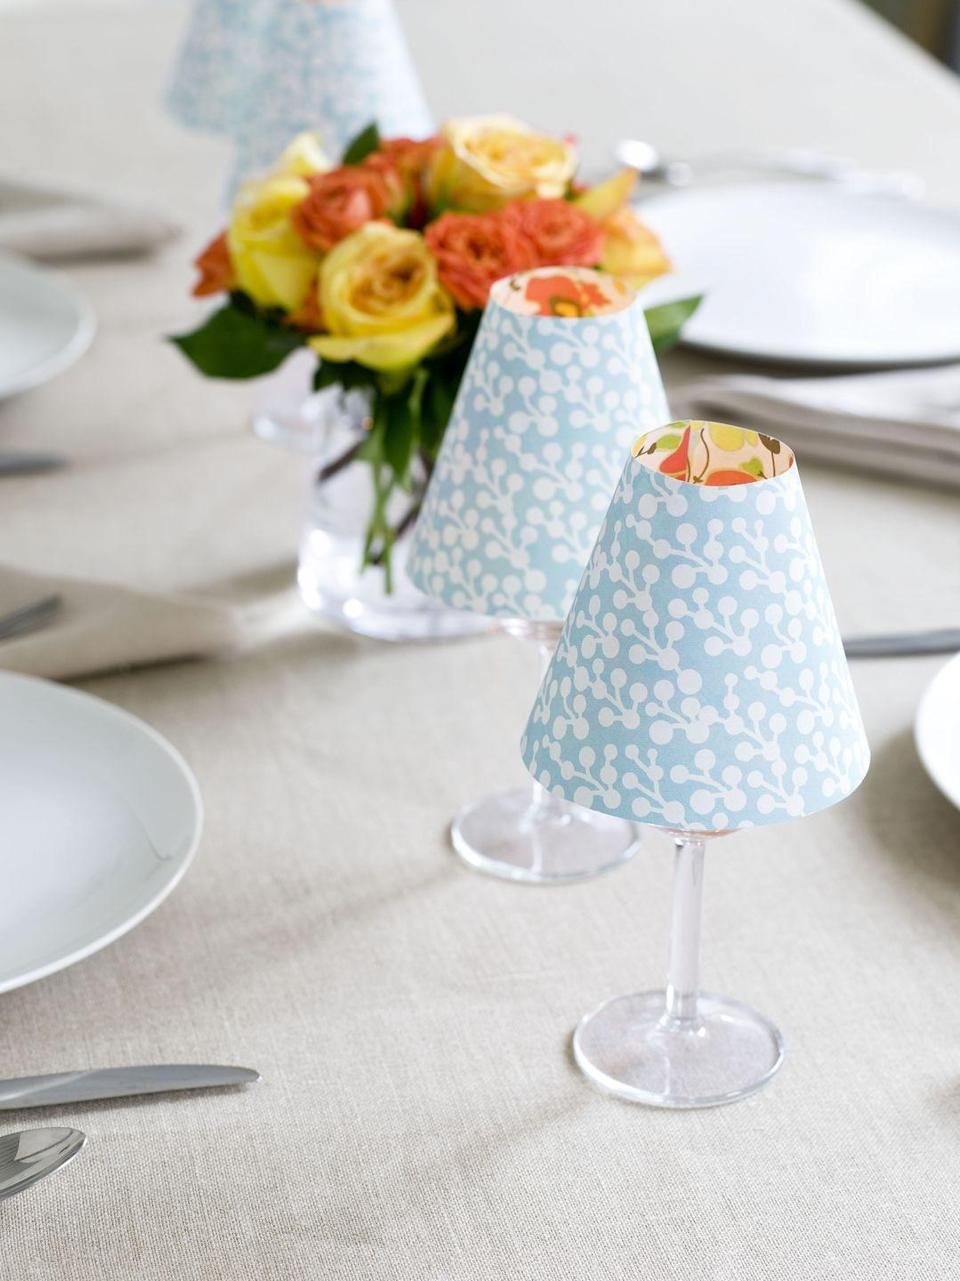 """<p>The dinner table shines brighter with a few clever """"lamps."""" Just pop a LED tea light in a wine glass and top it with a paper shade. </p><p><em><a href=""""https://www.goodhousekeeping.com/home/craft-ideas/how-to/a19133/candle-lampshade-craft/"""" rel=""""nofollow noopener"""" target=""""_blank"""" data-ylk=""""slk:Get the tutorial »"""" class=""""link rapid-noclick-resp"""">Get the tutorial »</a></em> </p>"""